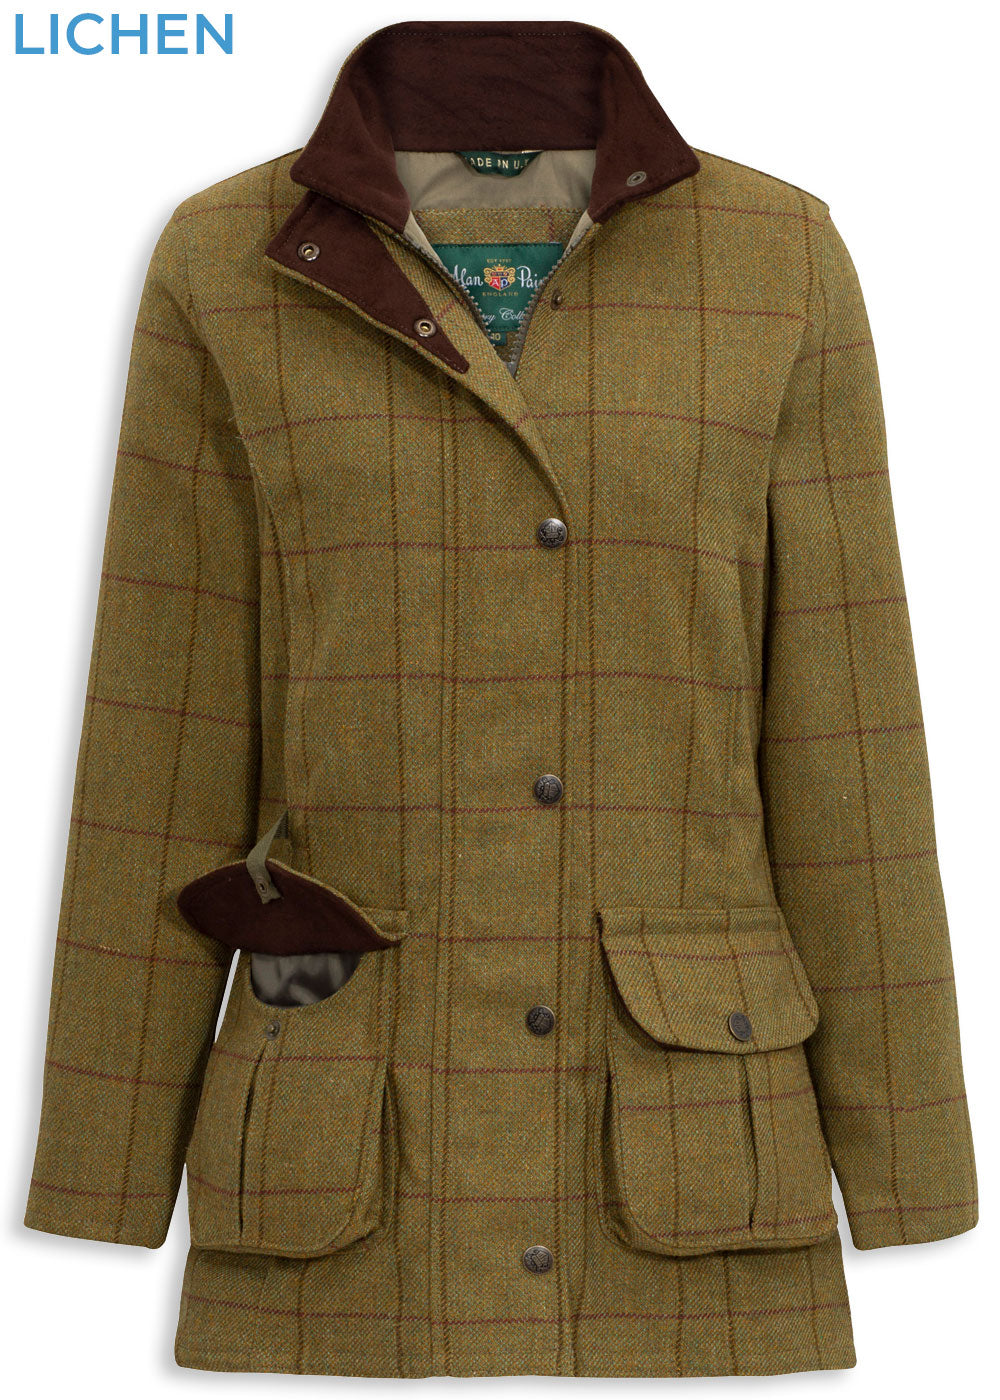 Lichen Alan Paine Rutland Ladies Waterproof Jacket